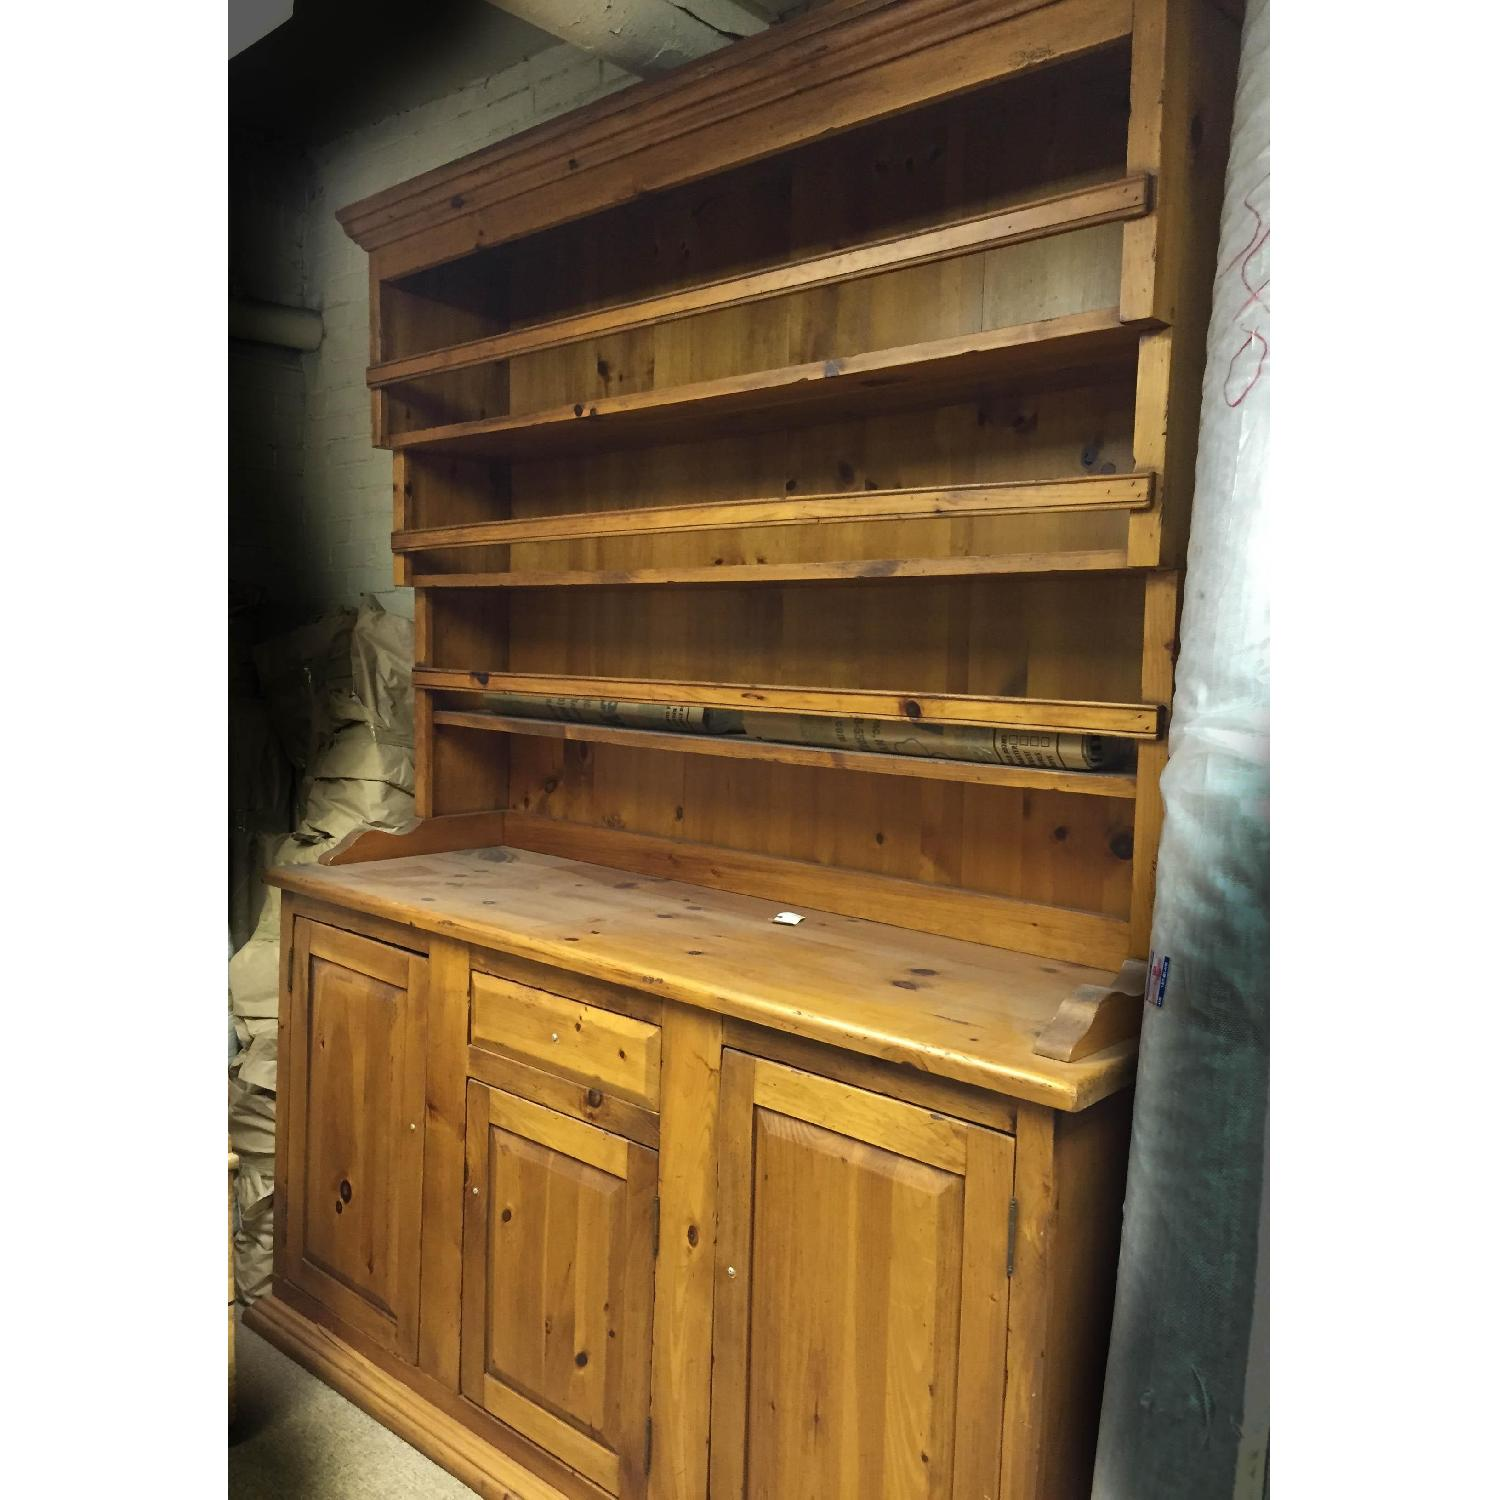 Antique Pine Welsh Kitchen Dresser & Display Hutch - image-4